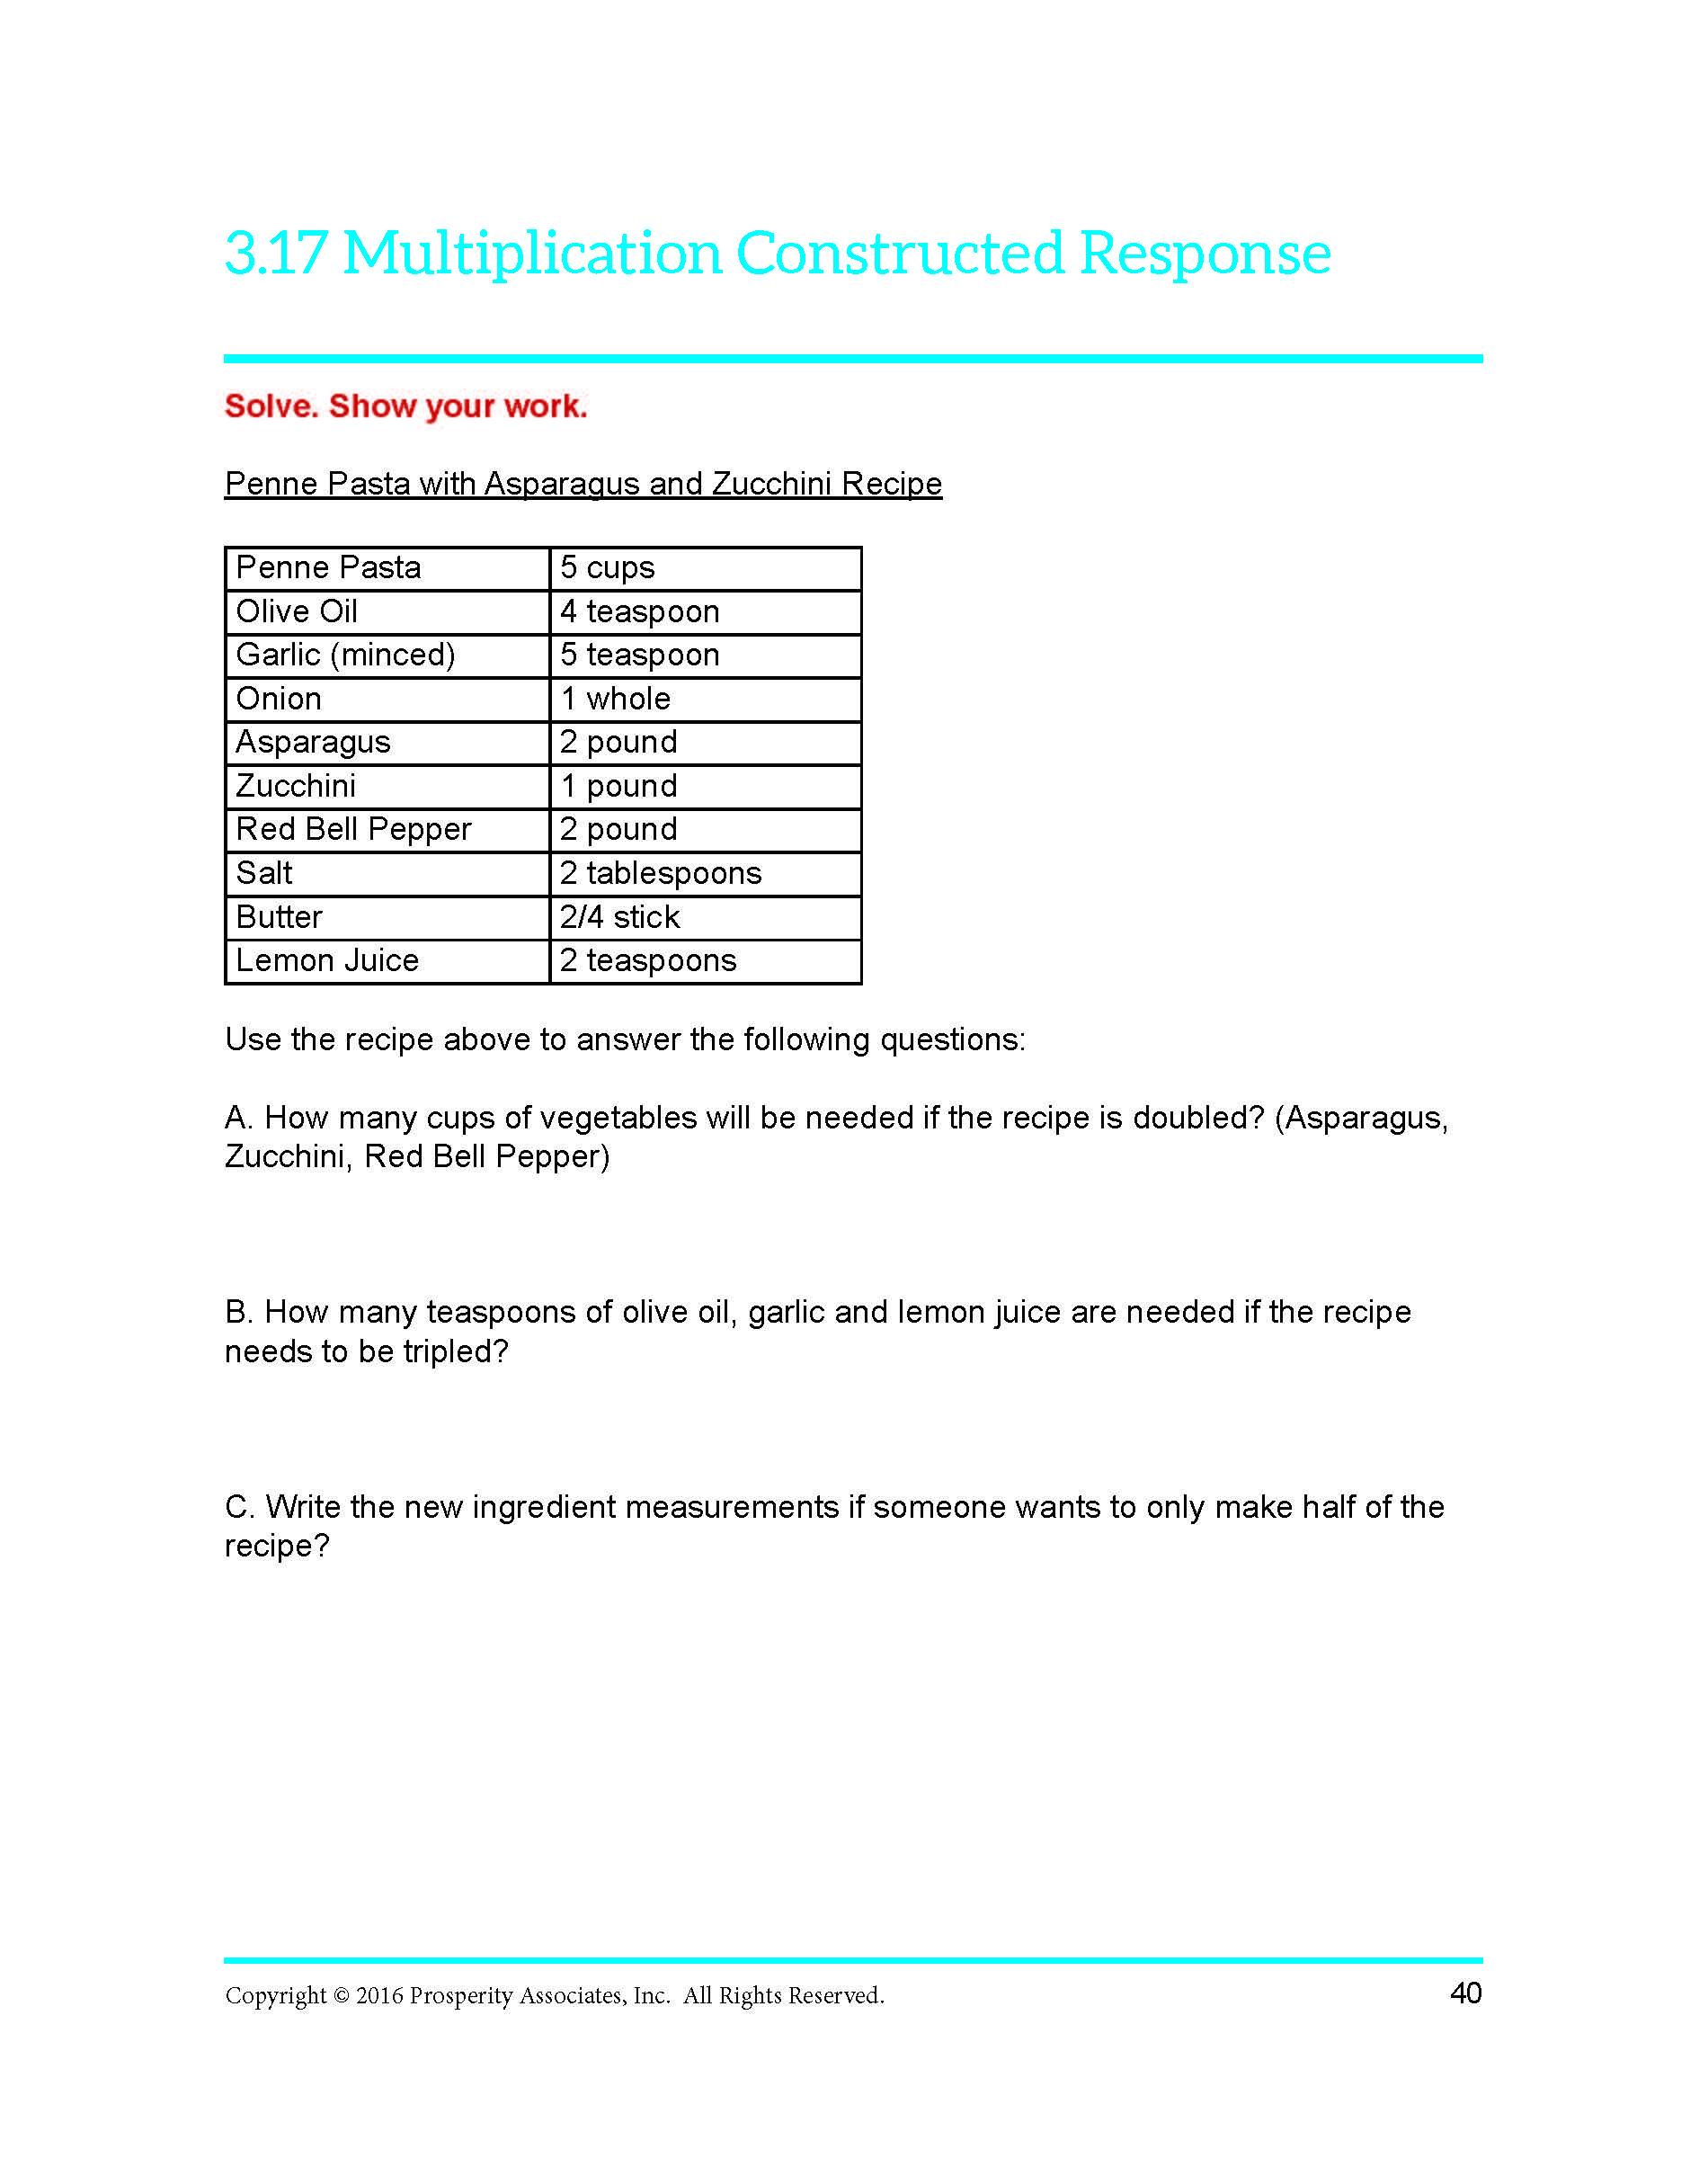 Grade-5-Multiplication-Constructed-Response.jpg